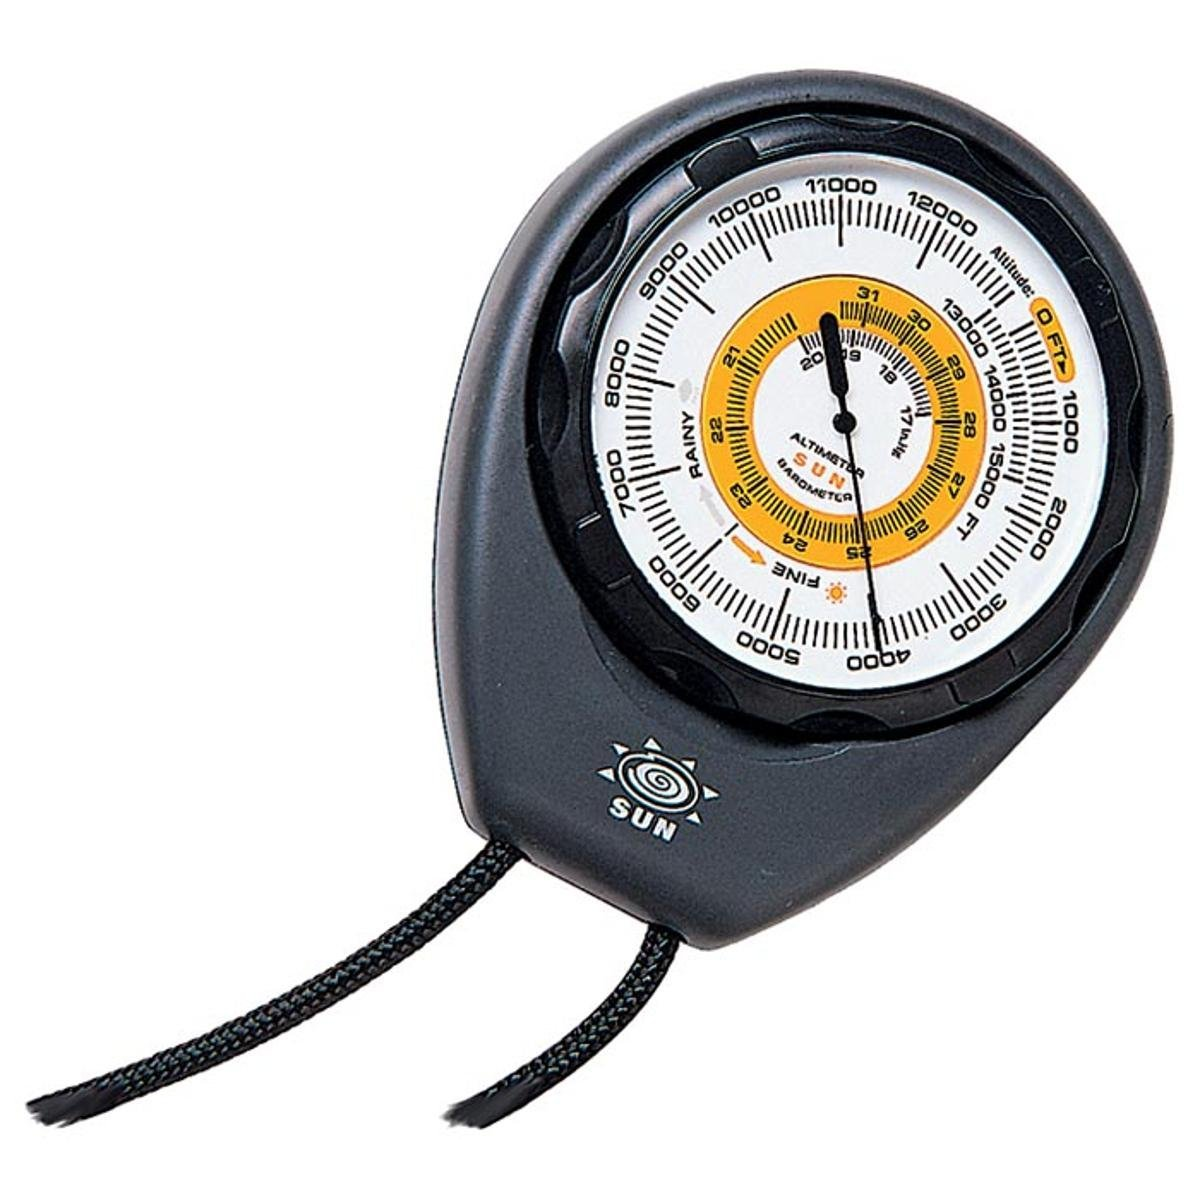 Altimeter and Barometer Includes Weather Trend Indicator Battery-free Analog Design Altitude in FEET, Handy altimeter... by